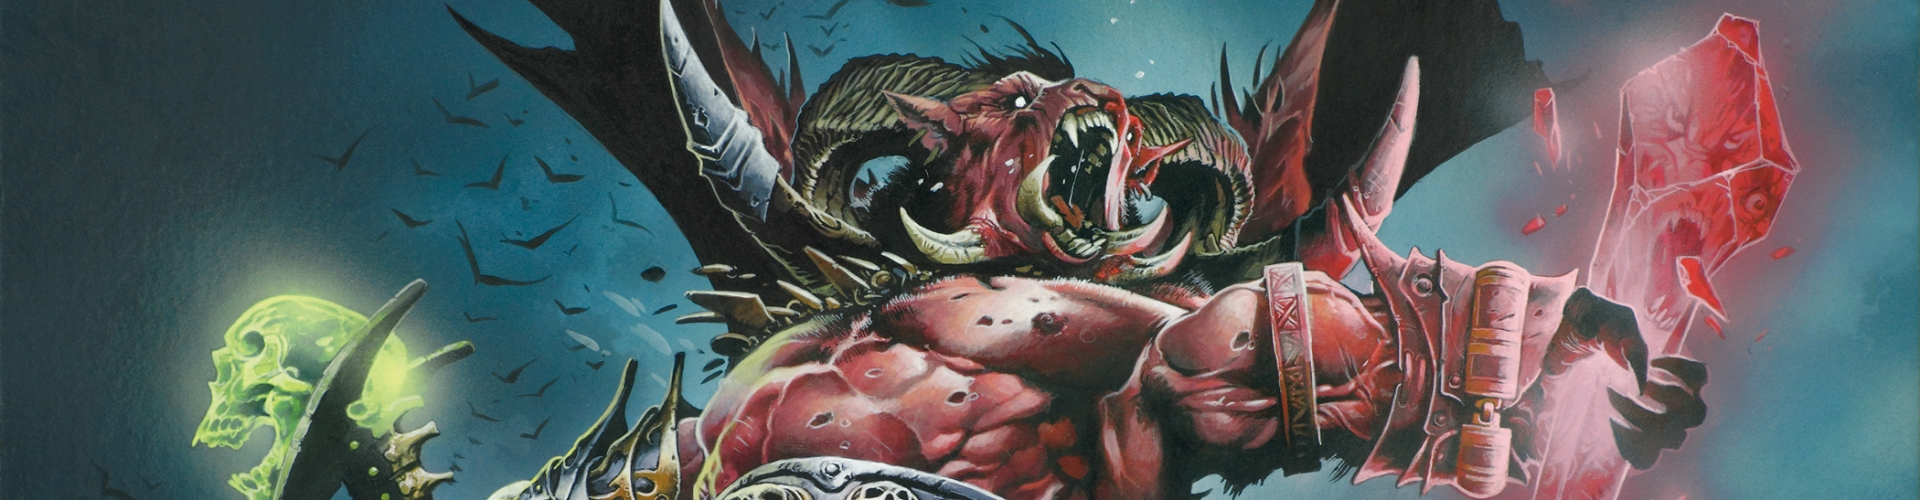 Monster Mythology | Dungeons & Dragons